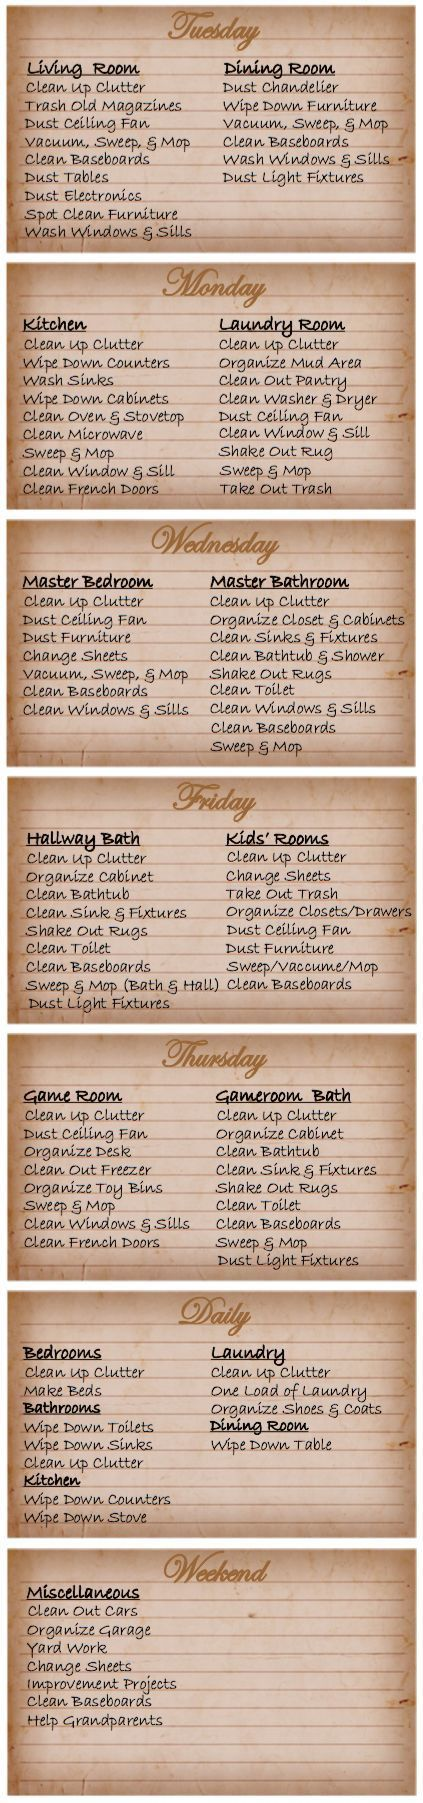 Printable House Cleaning Schedule | House cleaning schedules ...